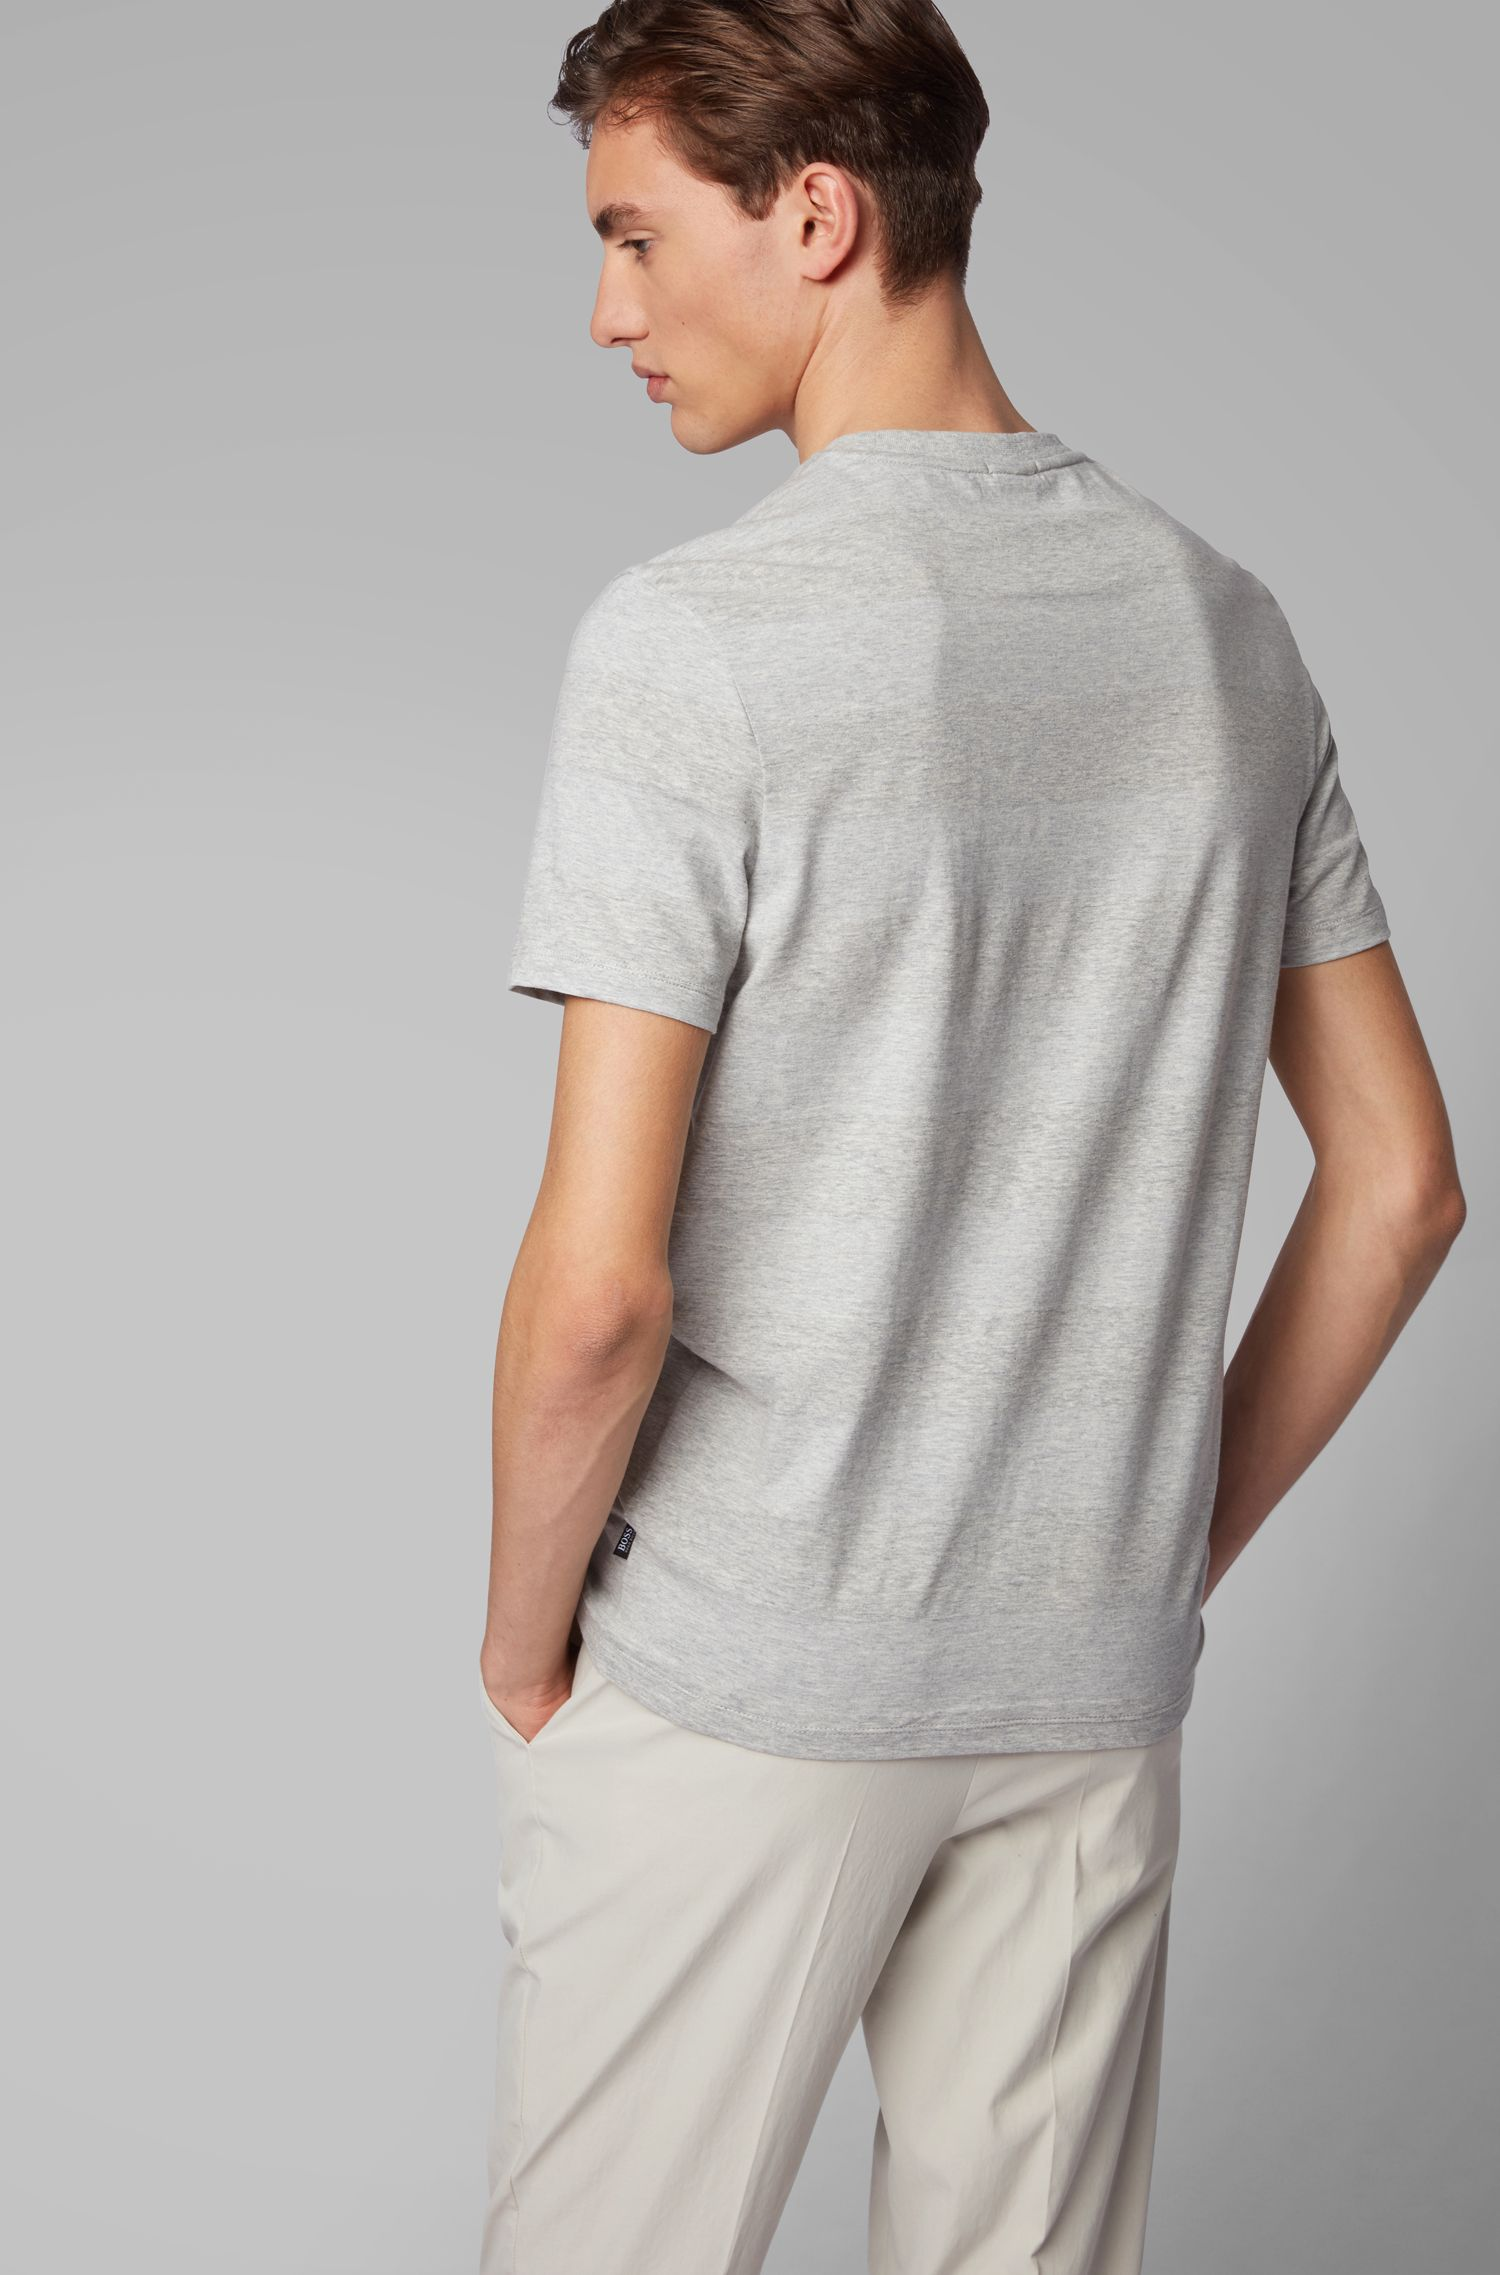 Crew-neck T-shirt in cotton and linen with stripes, Grey